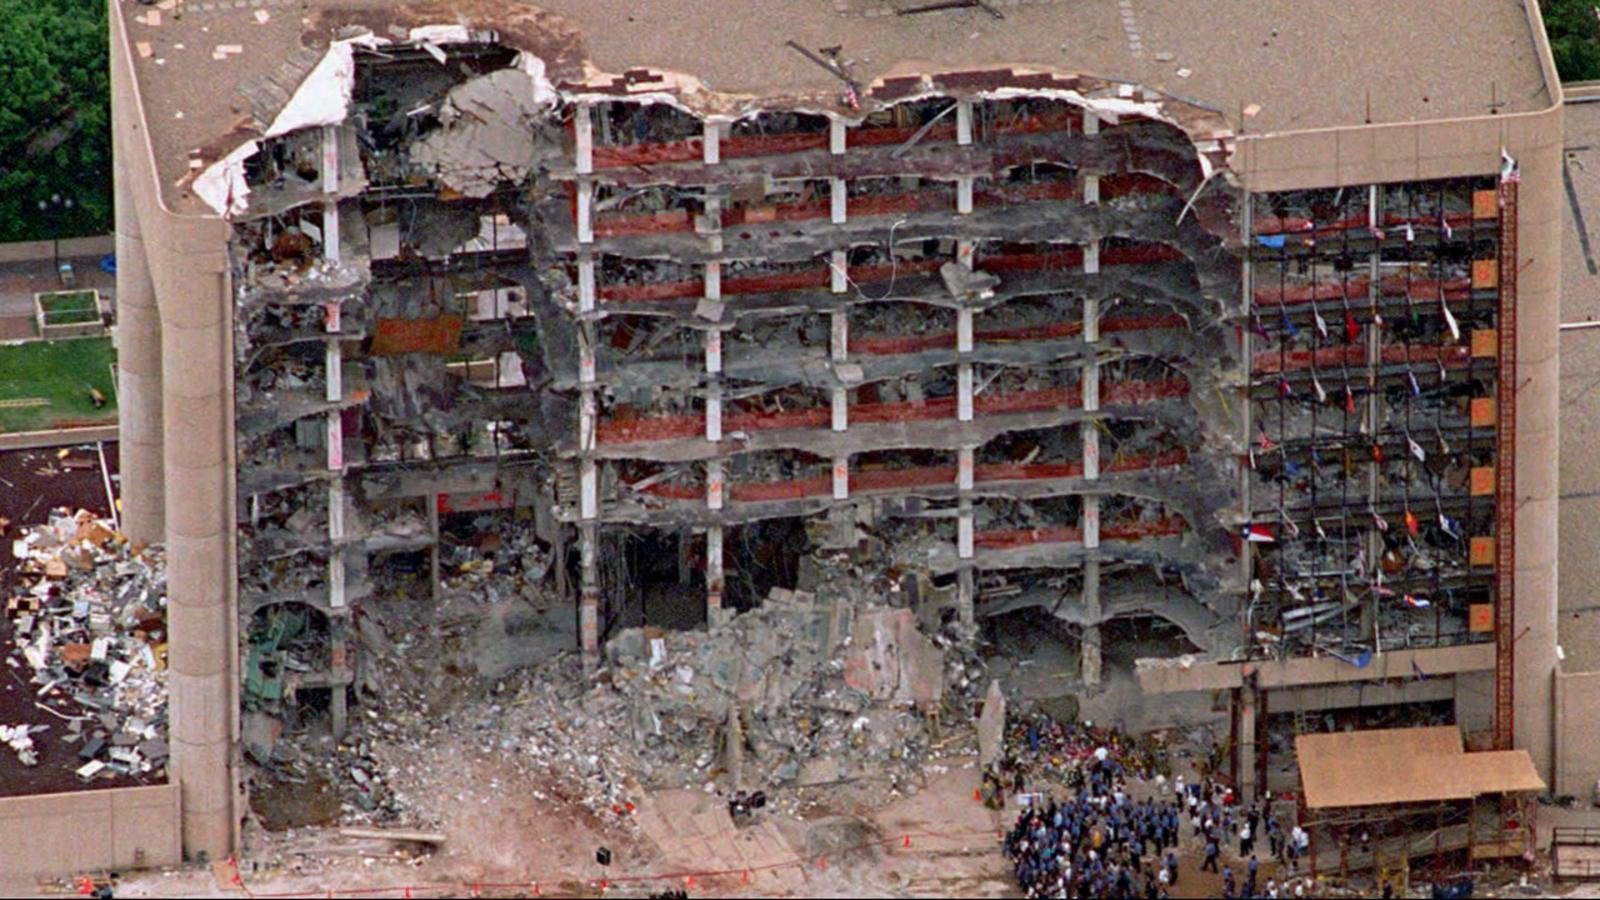 Oklahoma City Bombing Videos at ABC News Video Archive at abcnews.com